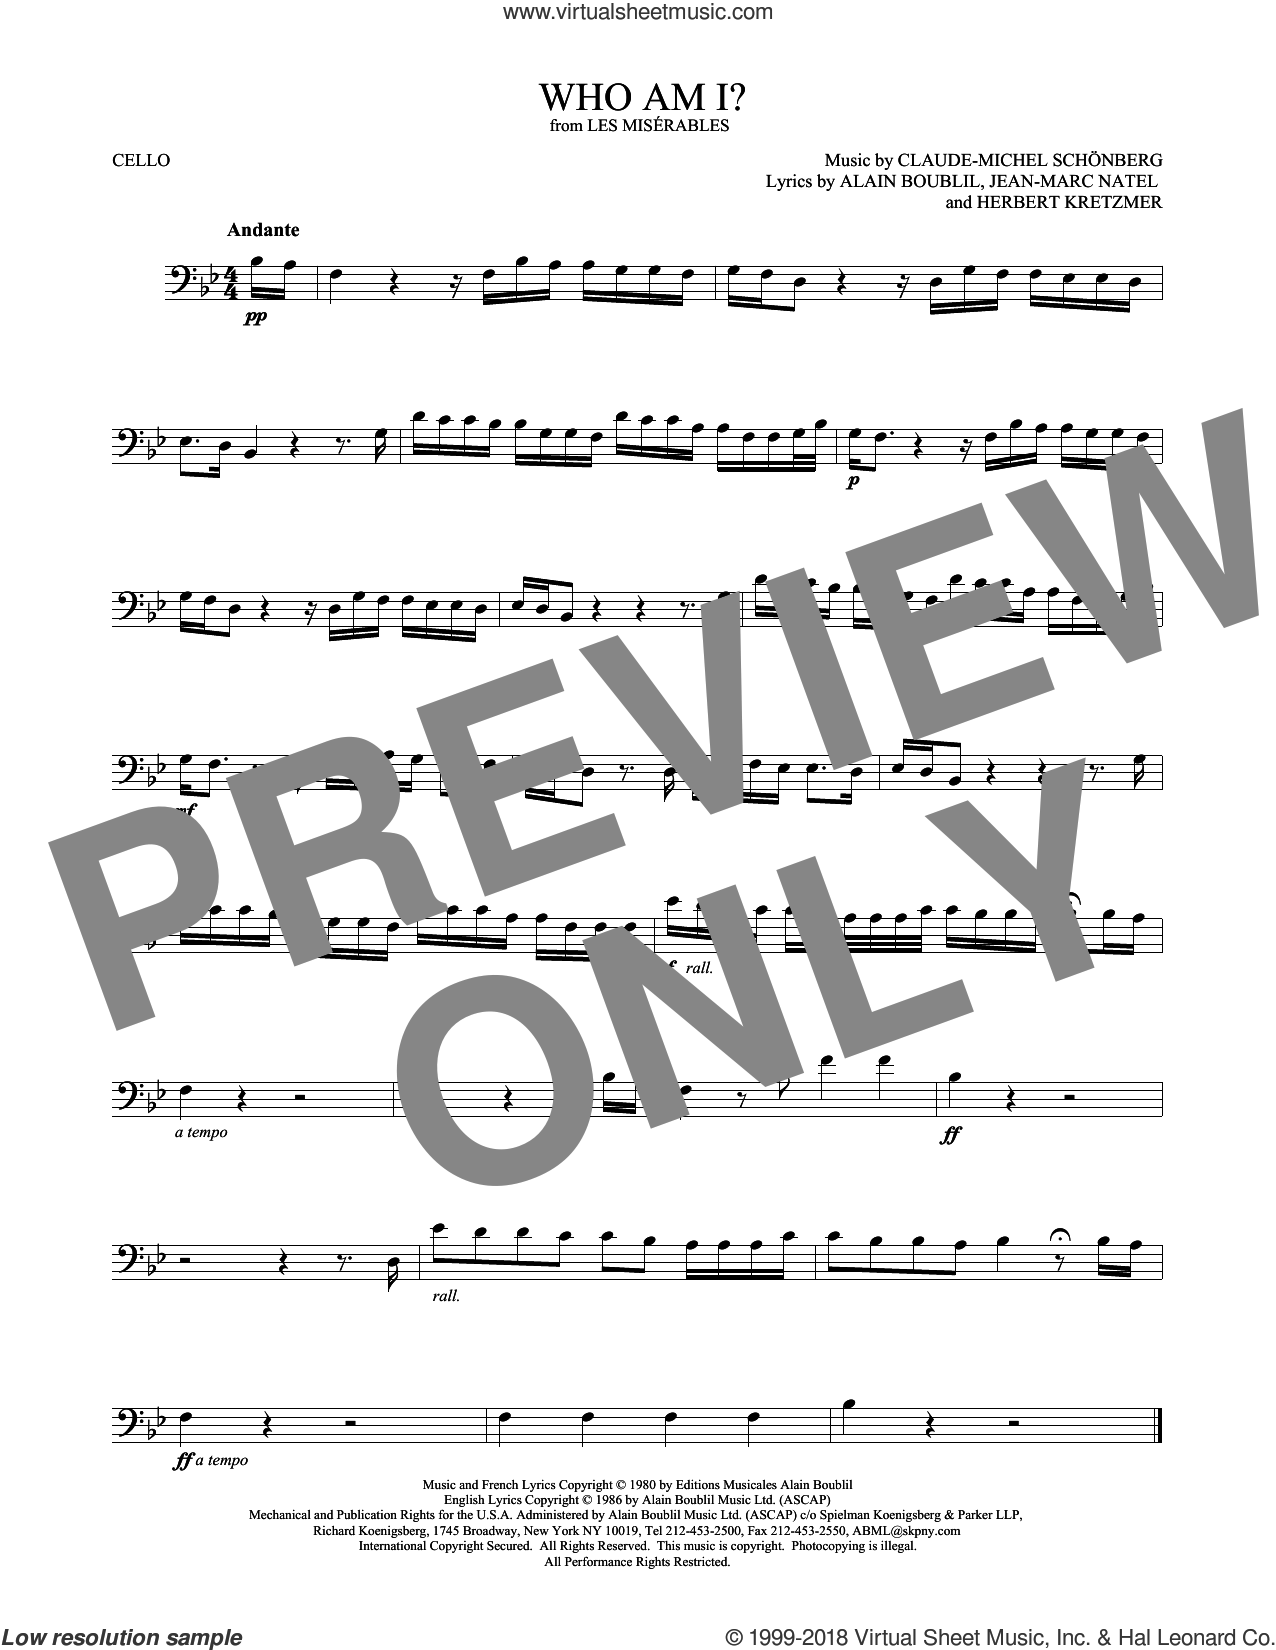 Who Am I? sheet music for cello solo by Alain Boublil, Claude-Michel Schonberg, Herbert Kretzmer and Jean-Marc Natel, intermediate skill level